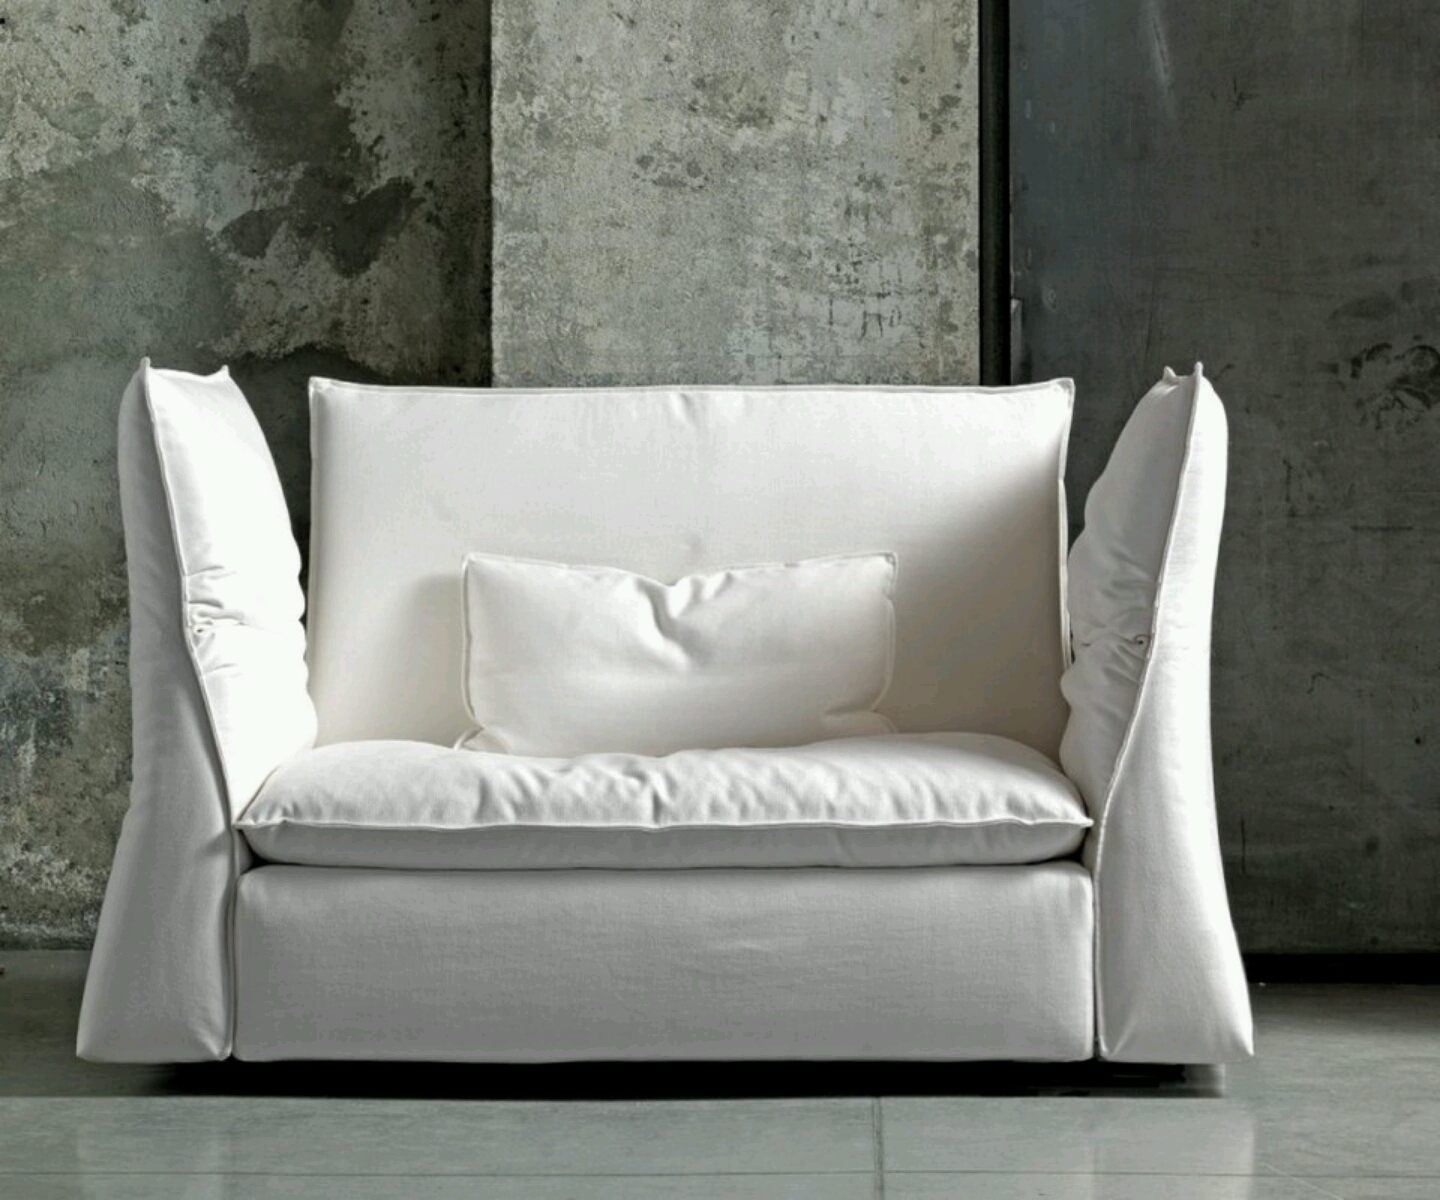 Beautiful modern sofa designs models. | An Interior Design